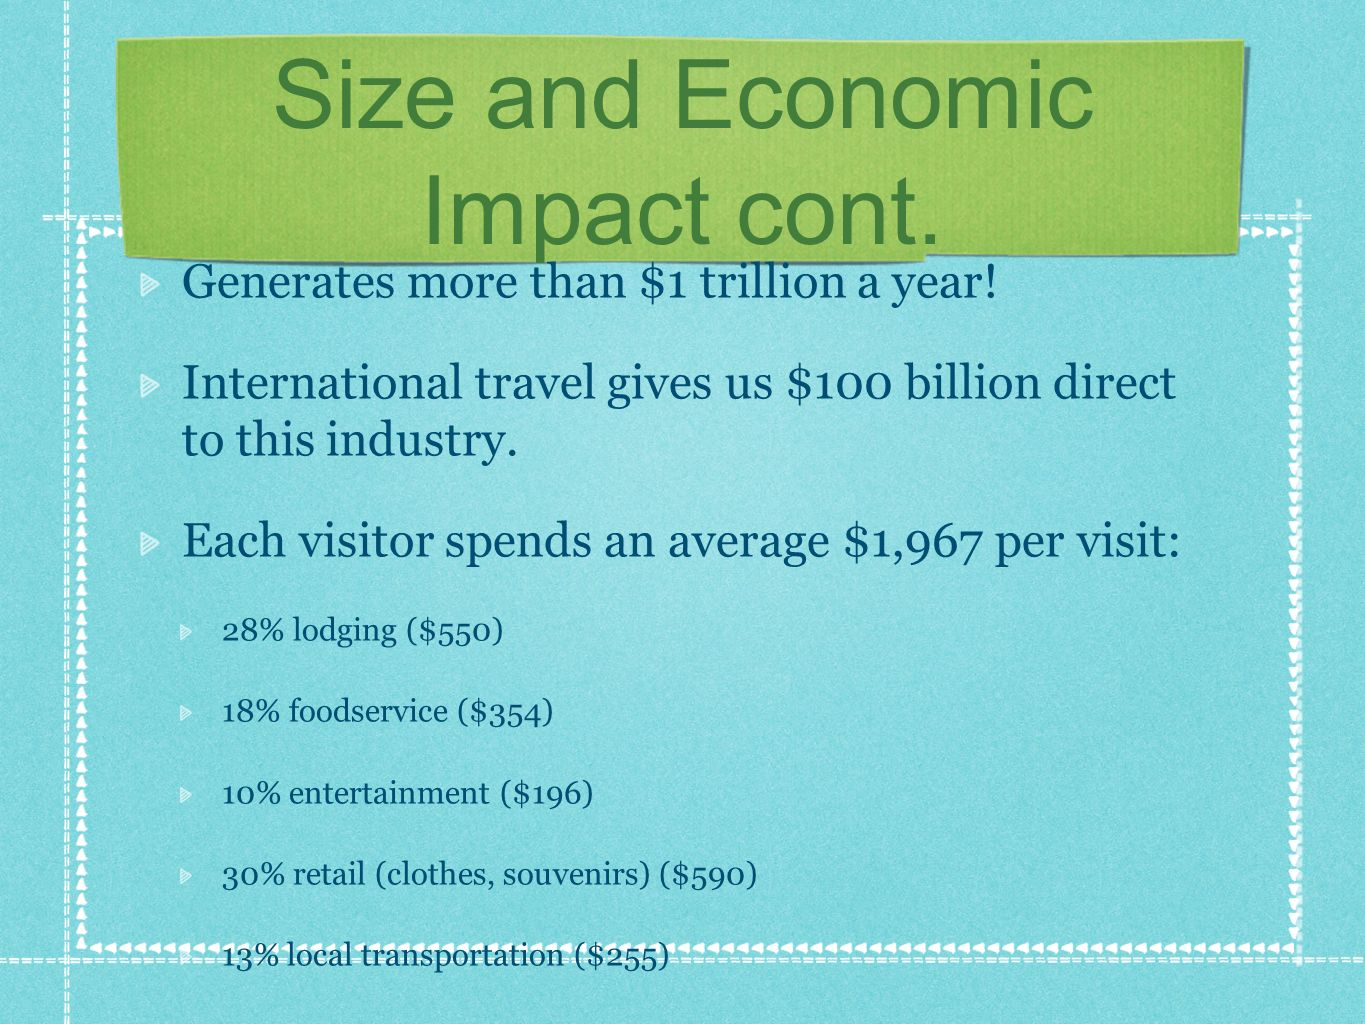 Size and Economic Impact cont. Generates more than $1 trillion a year.